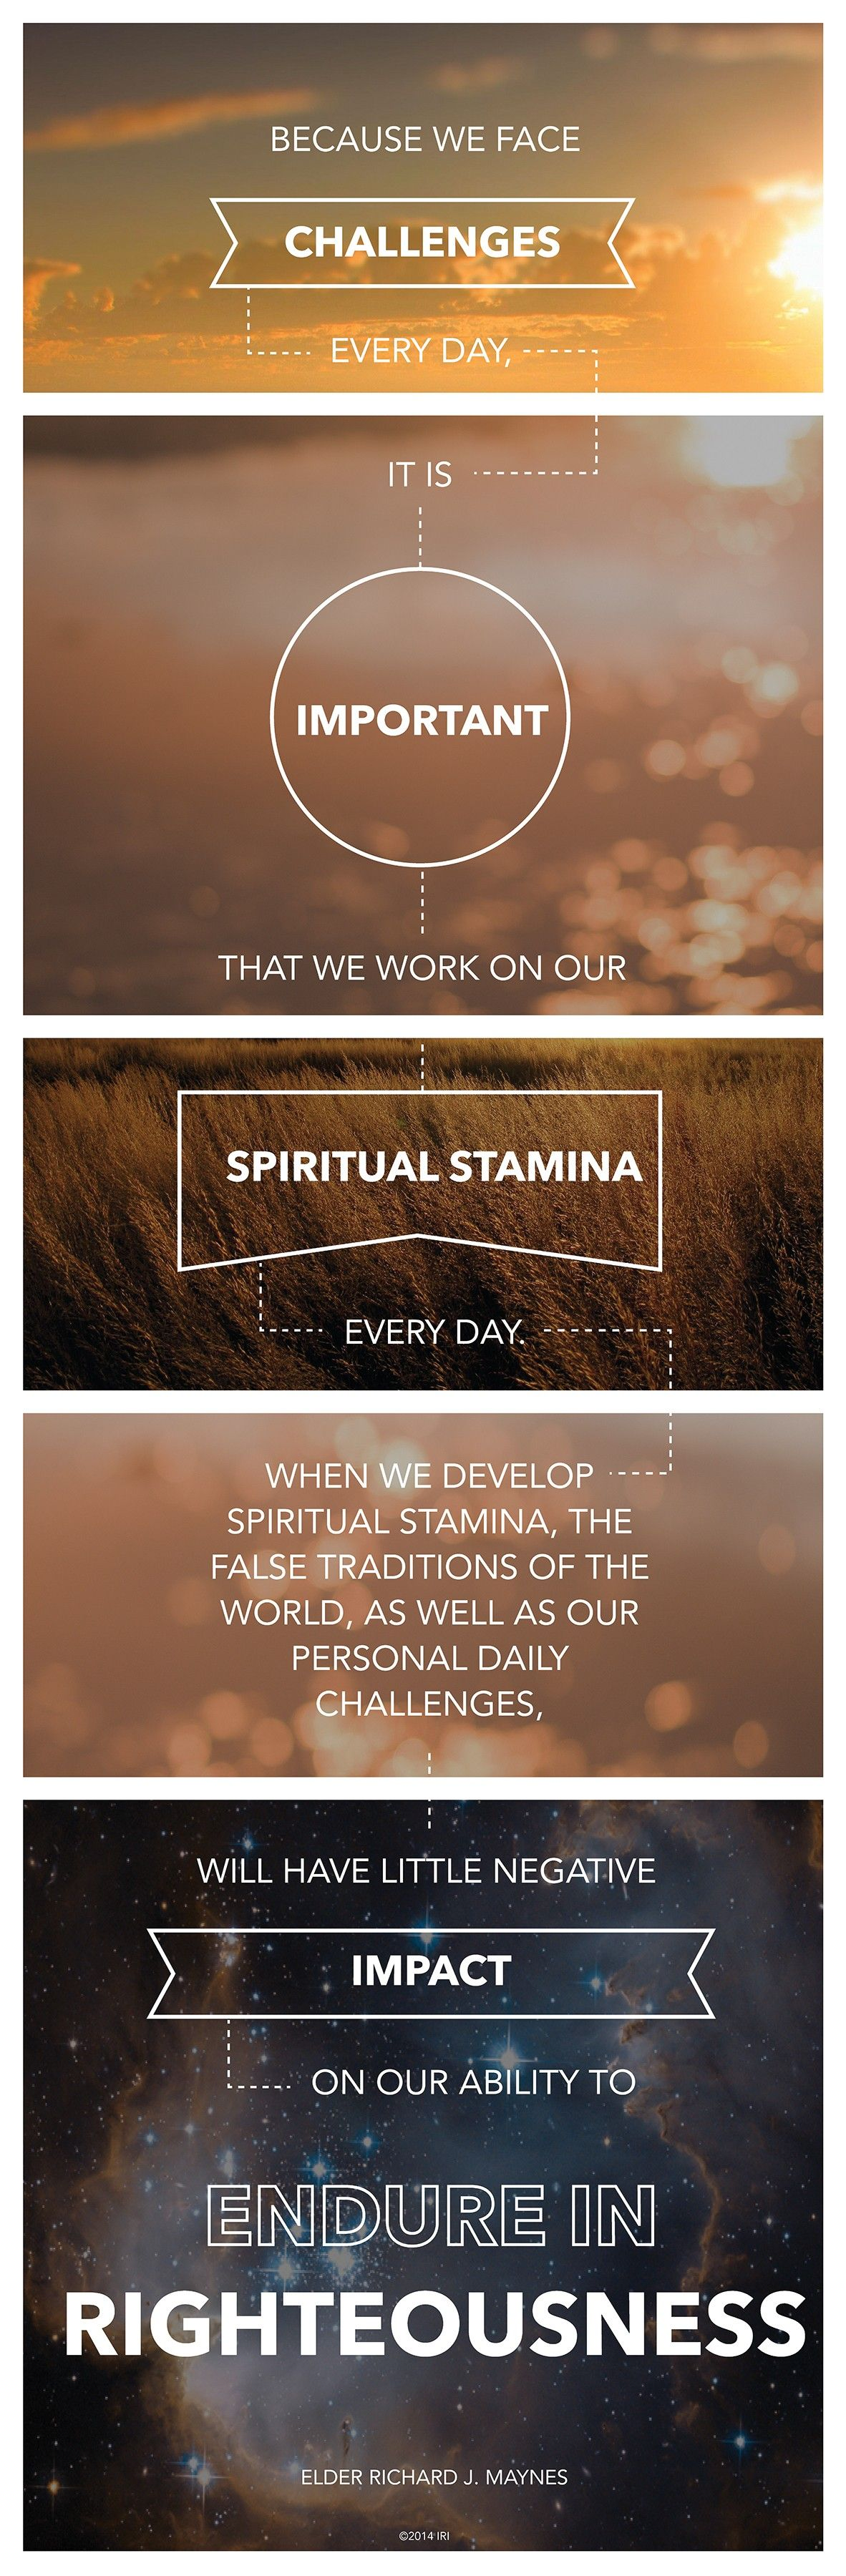 """""""Because we face challenges every day, it is important that we work on our spiritual stamina every day. When we develop spiritual stamina, the false traditions of the world, as well as our personal daily challenges, will have little negative impact on our ability to endure in righteousness.""""—Elder Richard J. Maynes"""